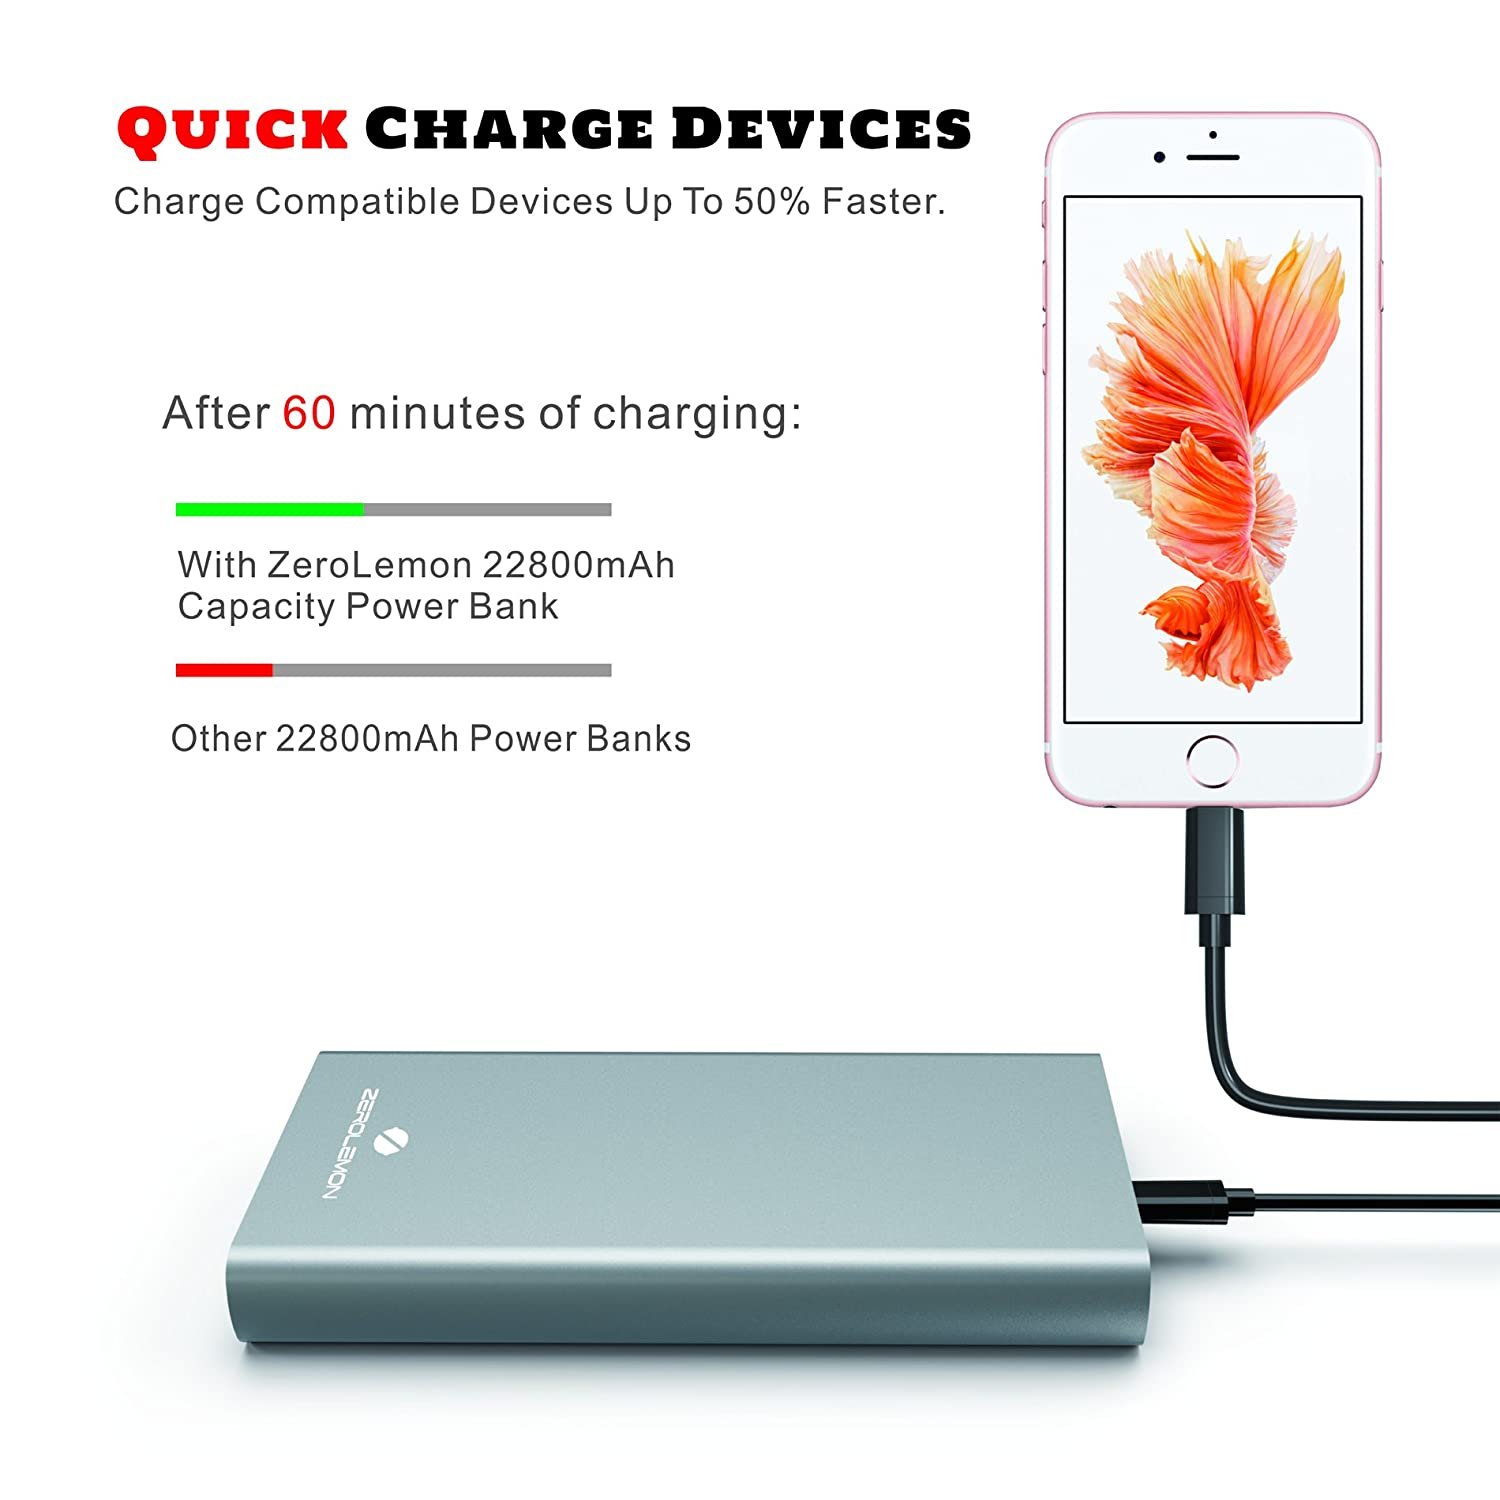 ZeroLemon 22800mAh Portable Charger Power Bank-Space Grey